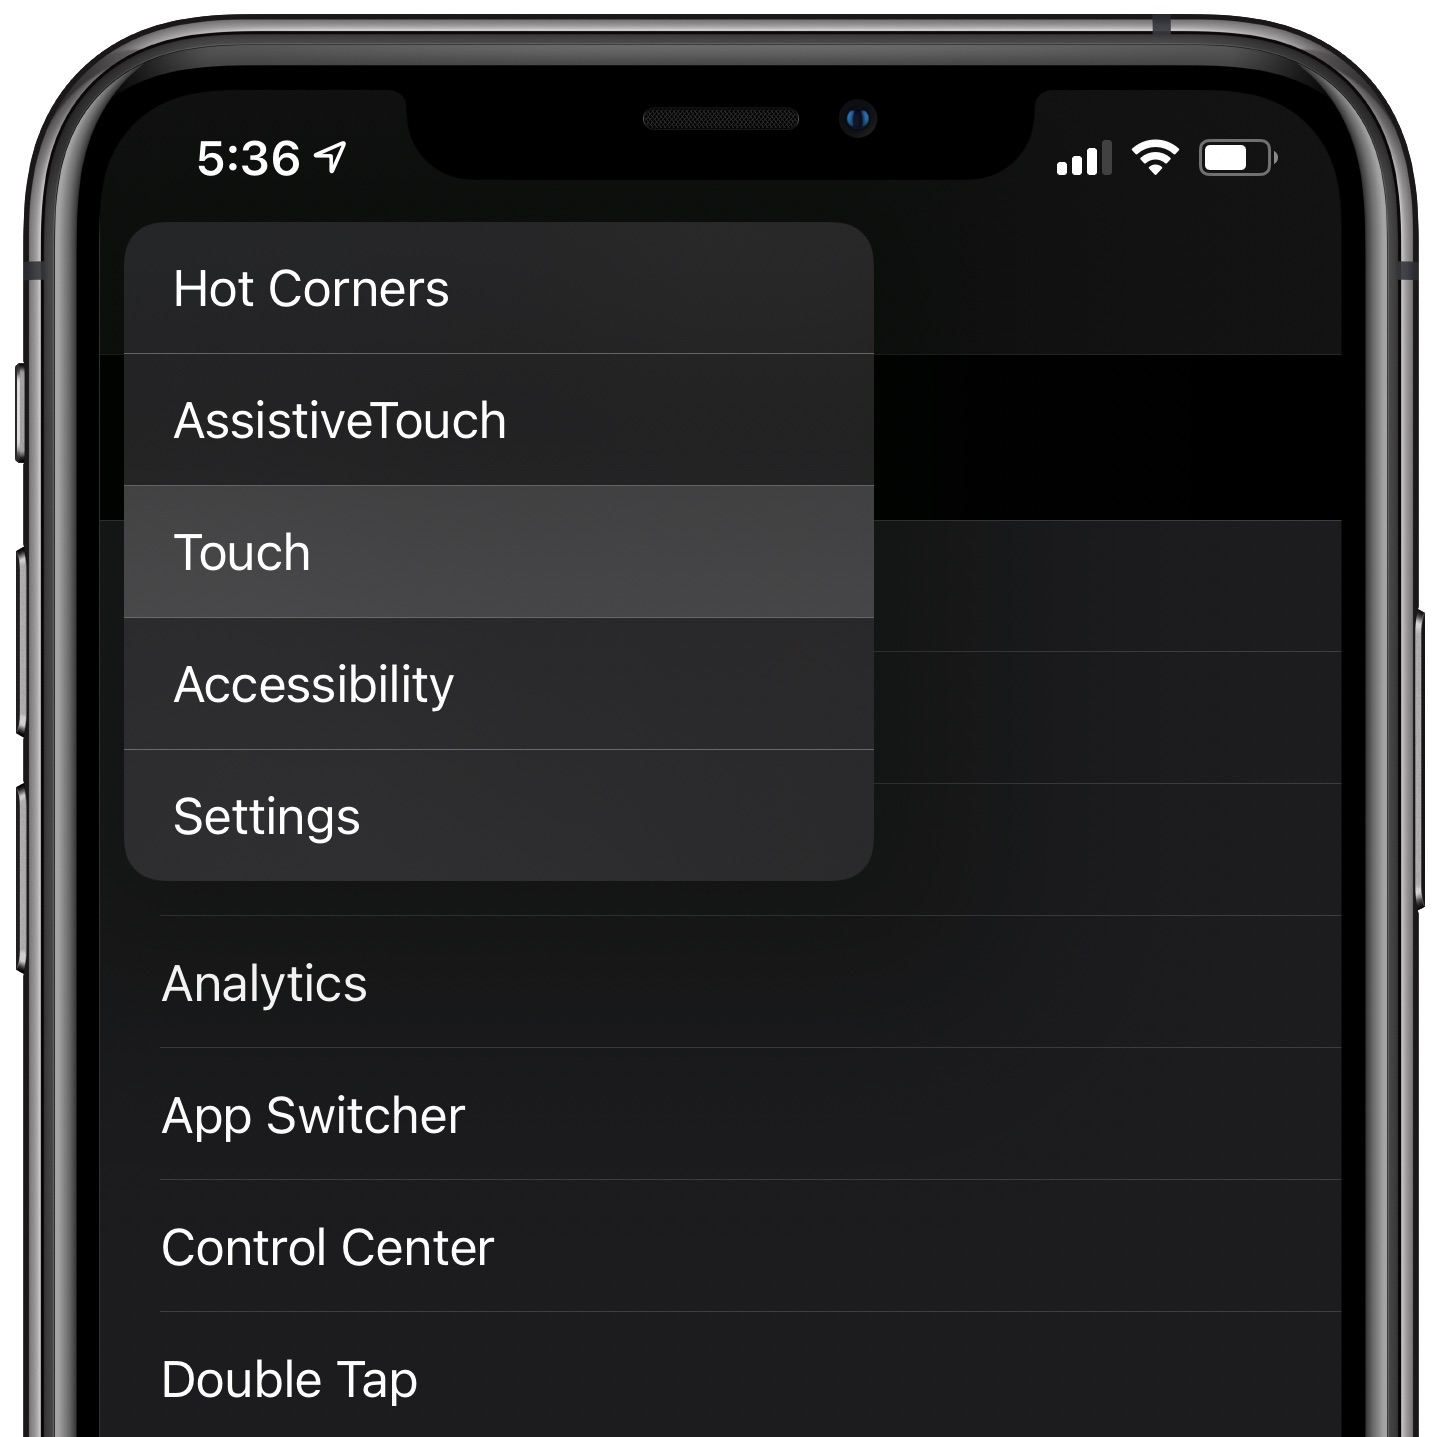 iPhone Settings navigation menu in Dark Mode